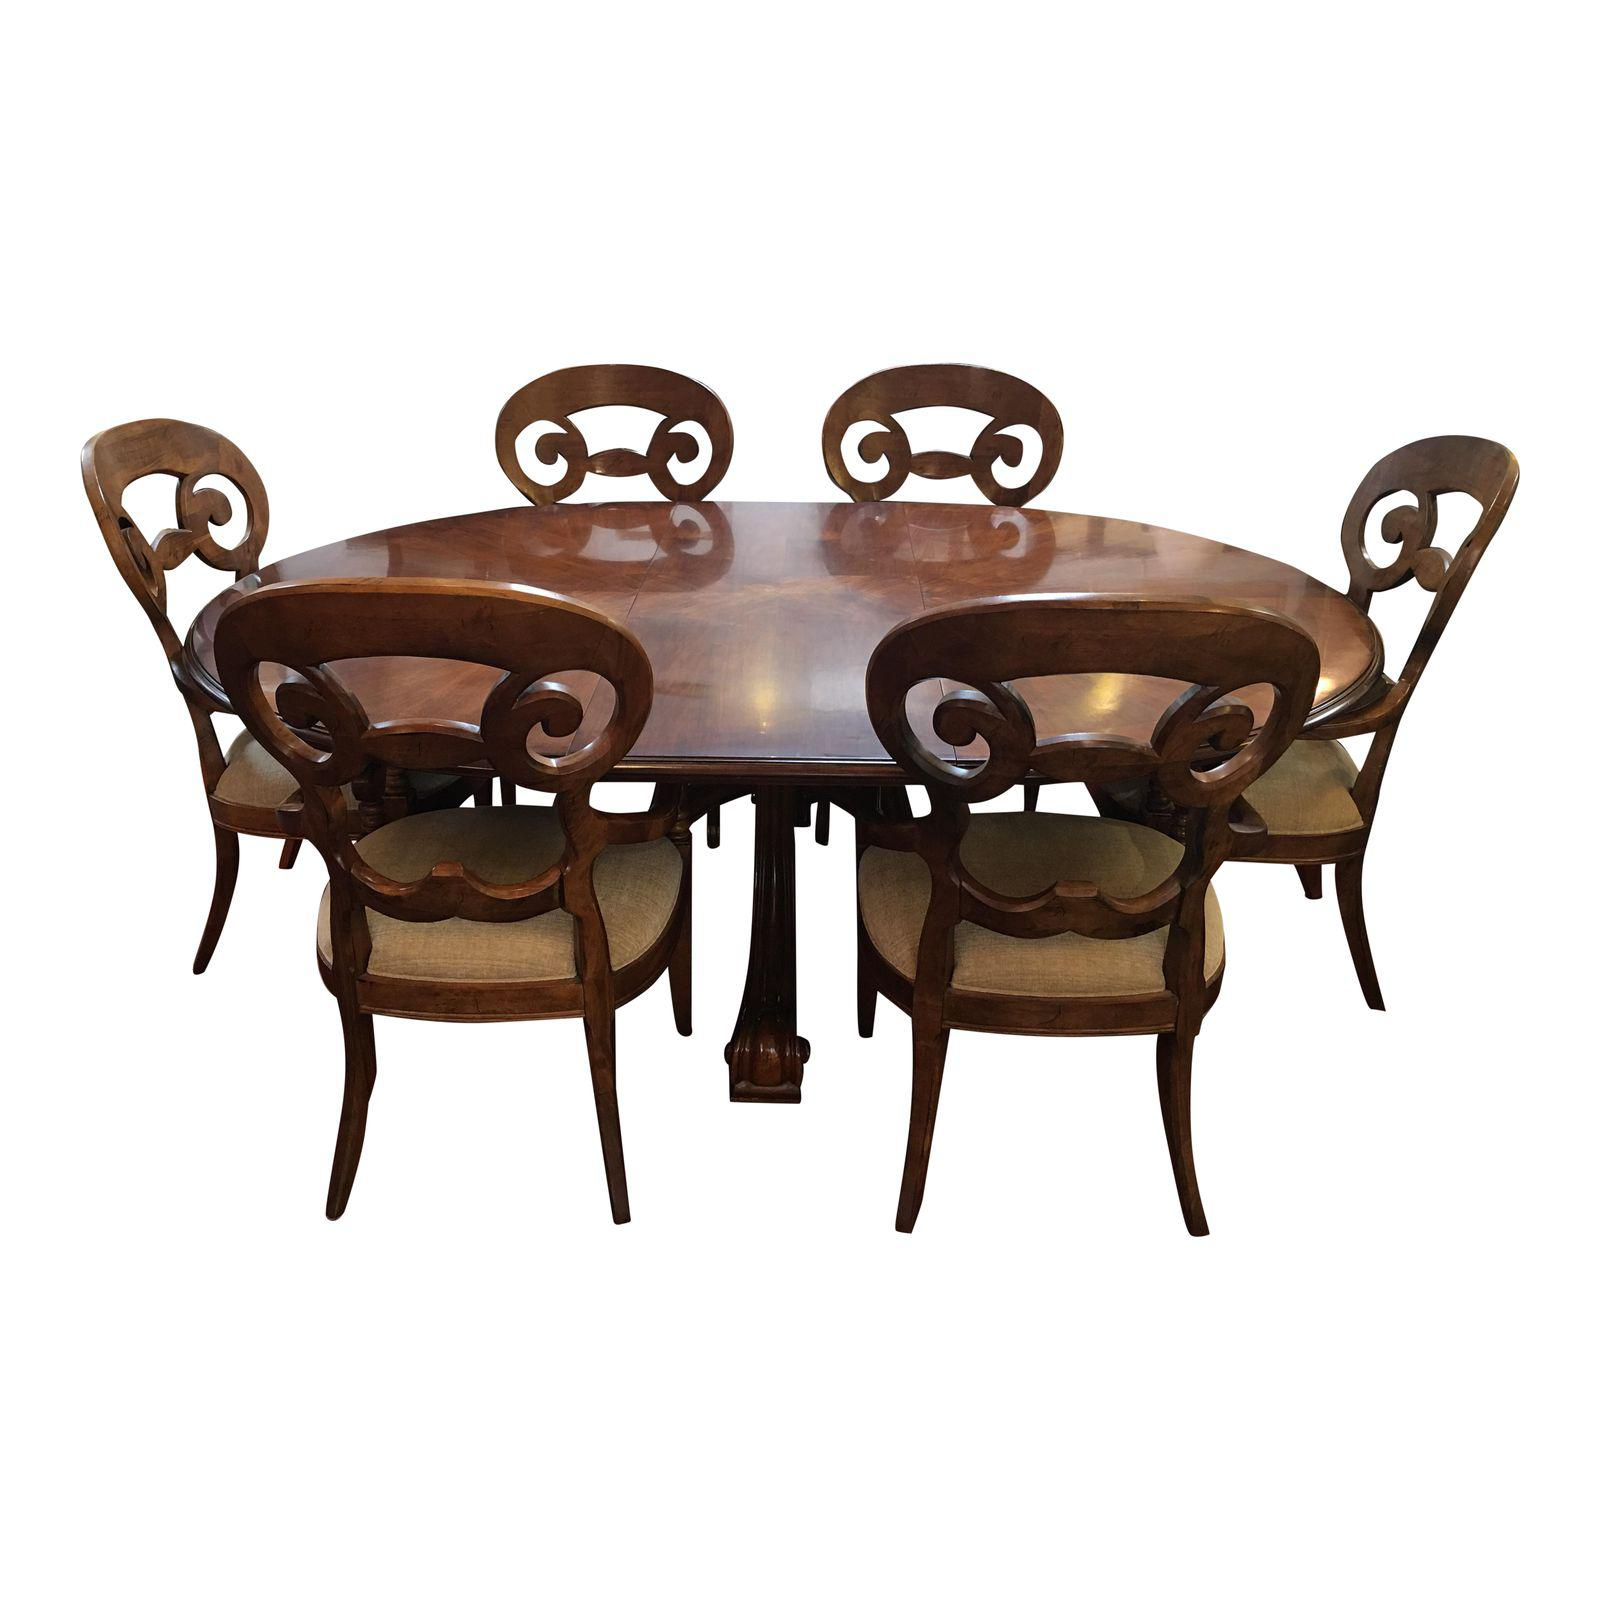 Sold Design Plus Consignment Gallery Presents A Custom Dining Set From Century Furniture